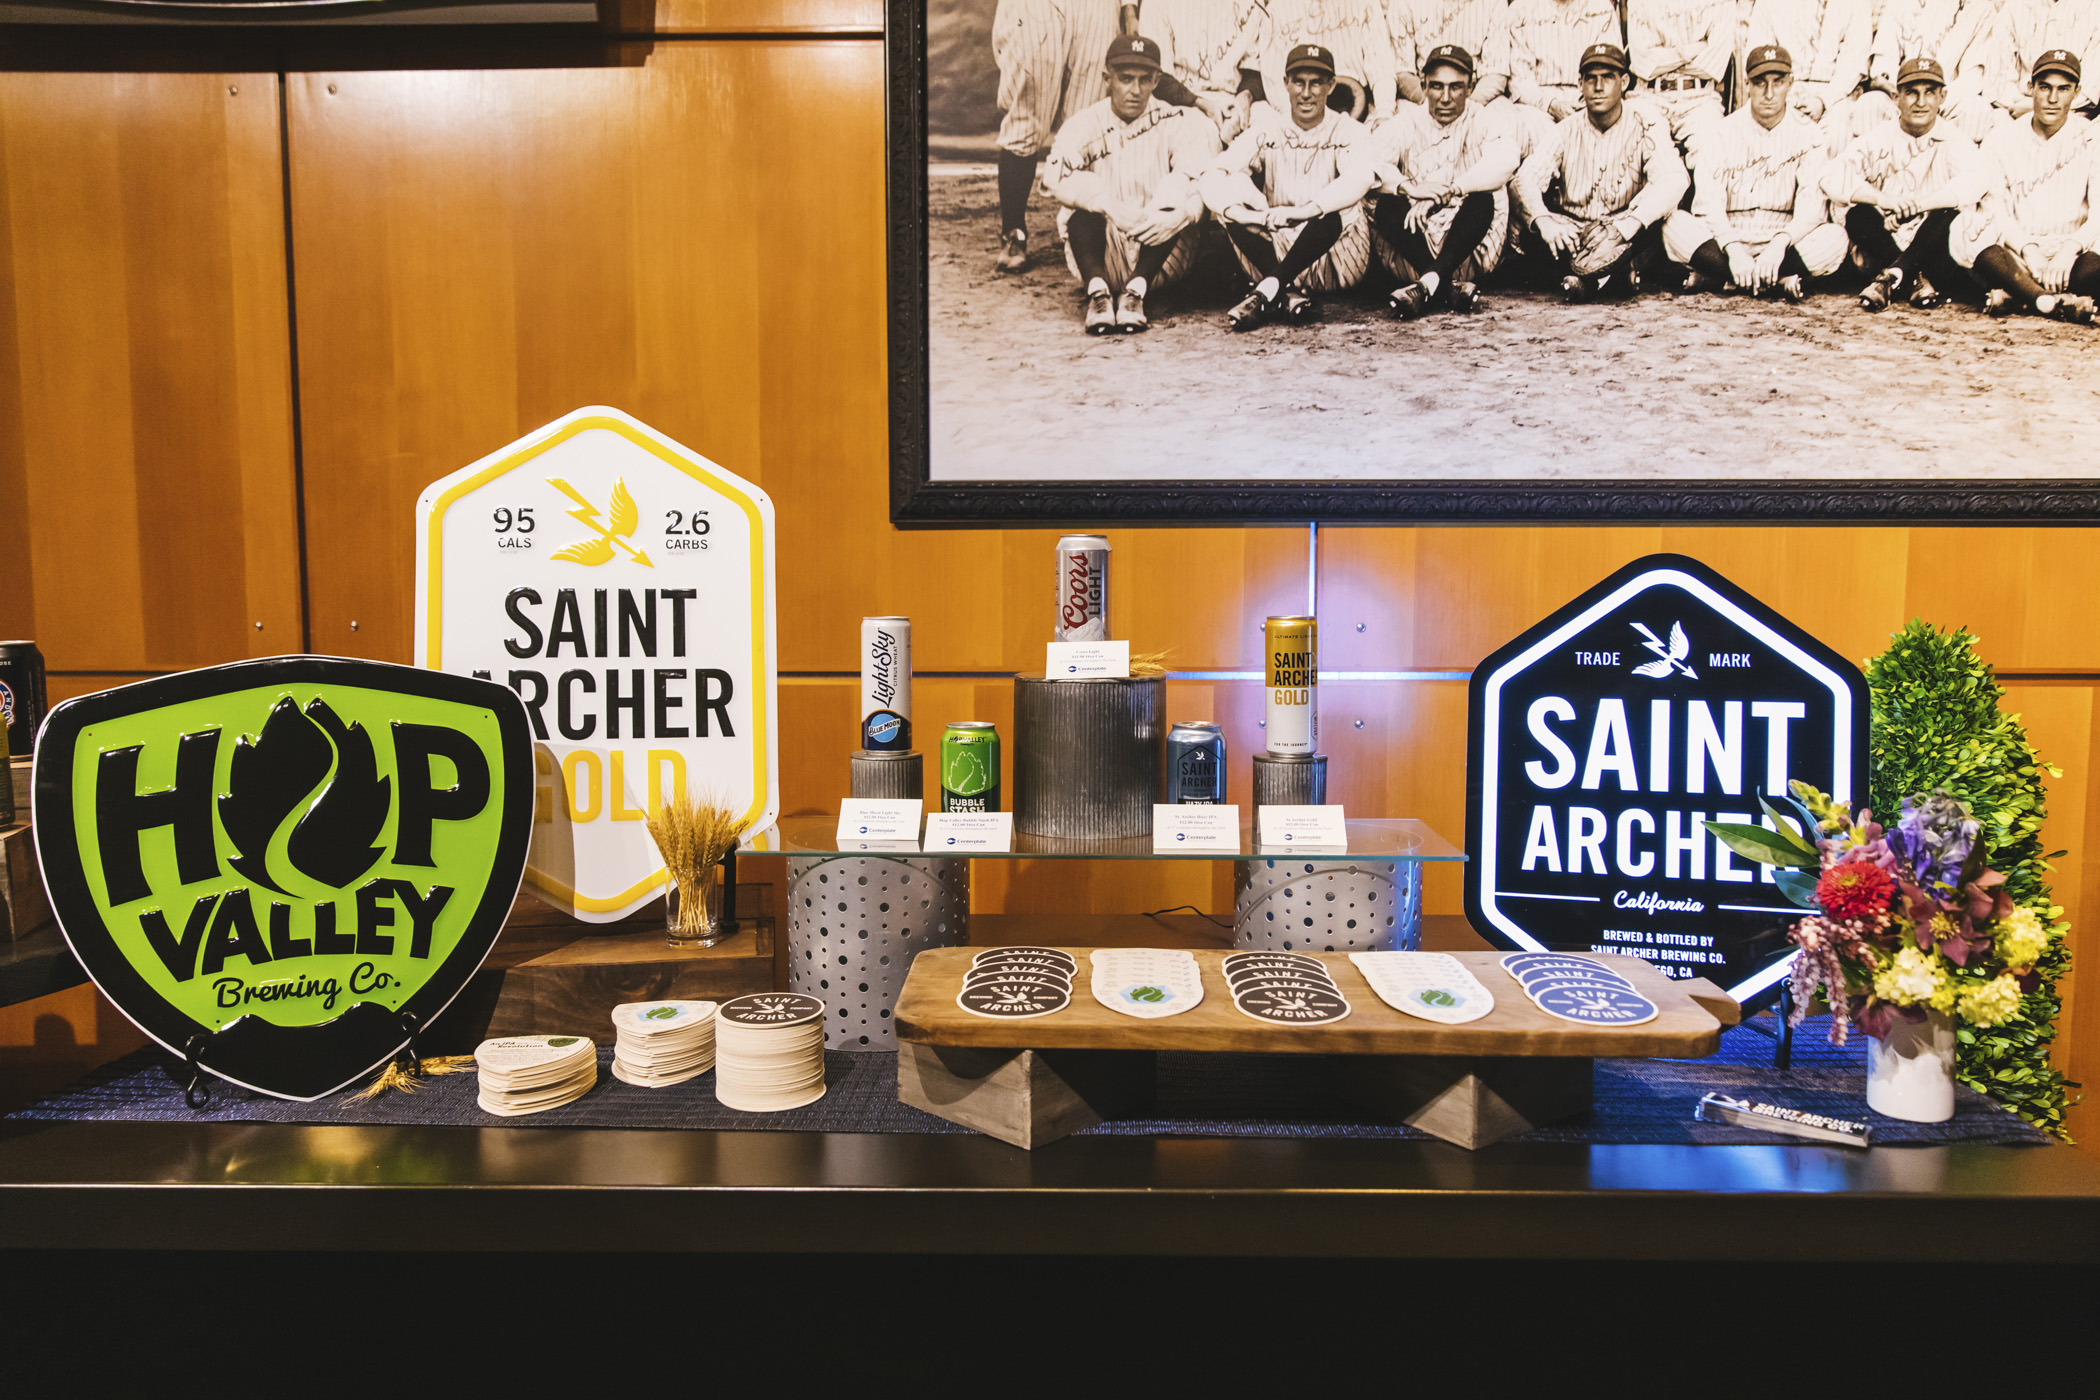 We snuck in a little preview of the beer, wine and spirits offerings for the 2020 Seattle Mariners season at T-Mobile Park! Home Opener is March 26 at 1:10 p.m. agains the Rangers. Go M's! (Image: Sunita Martini / Seattle Refined)